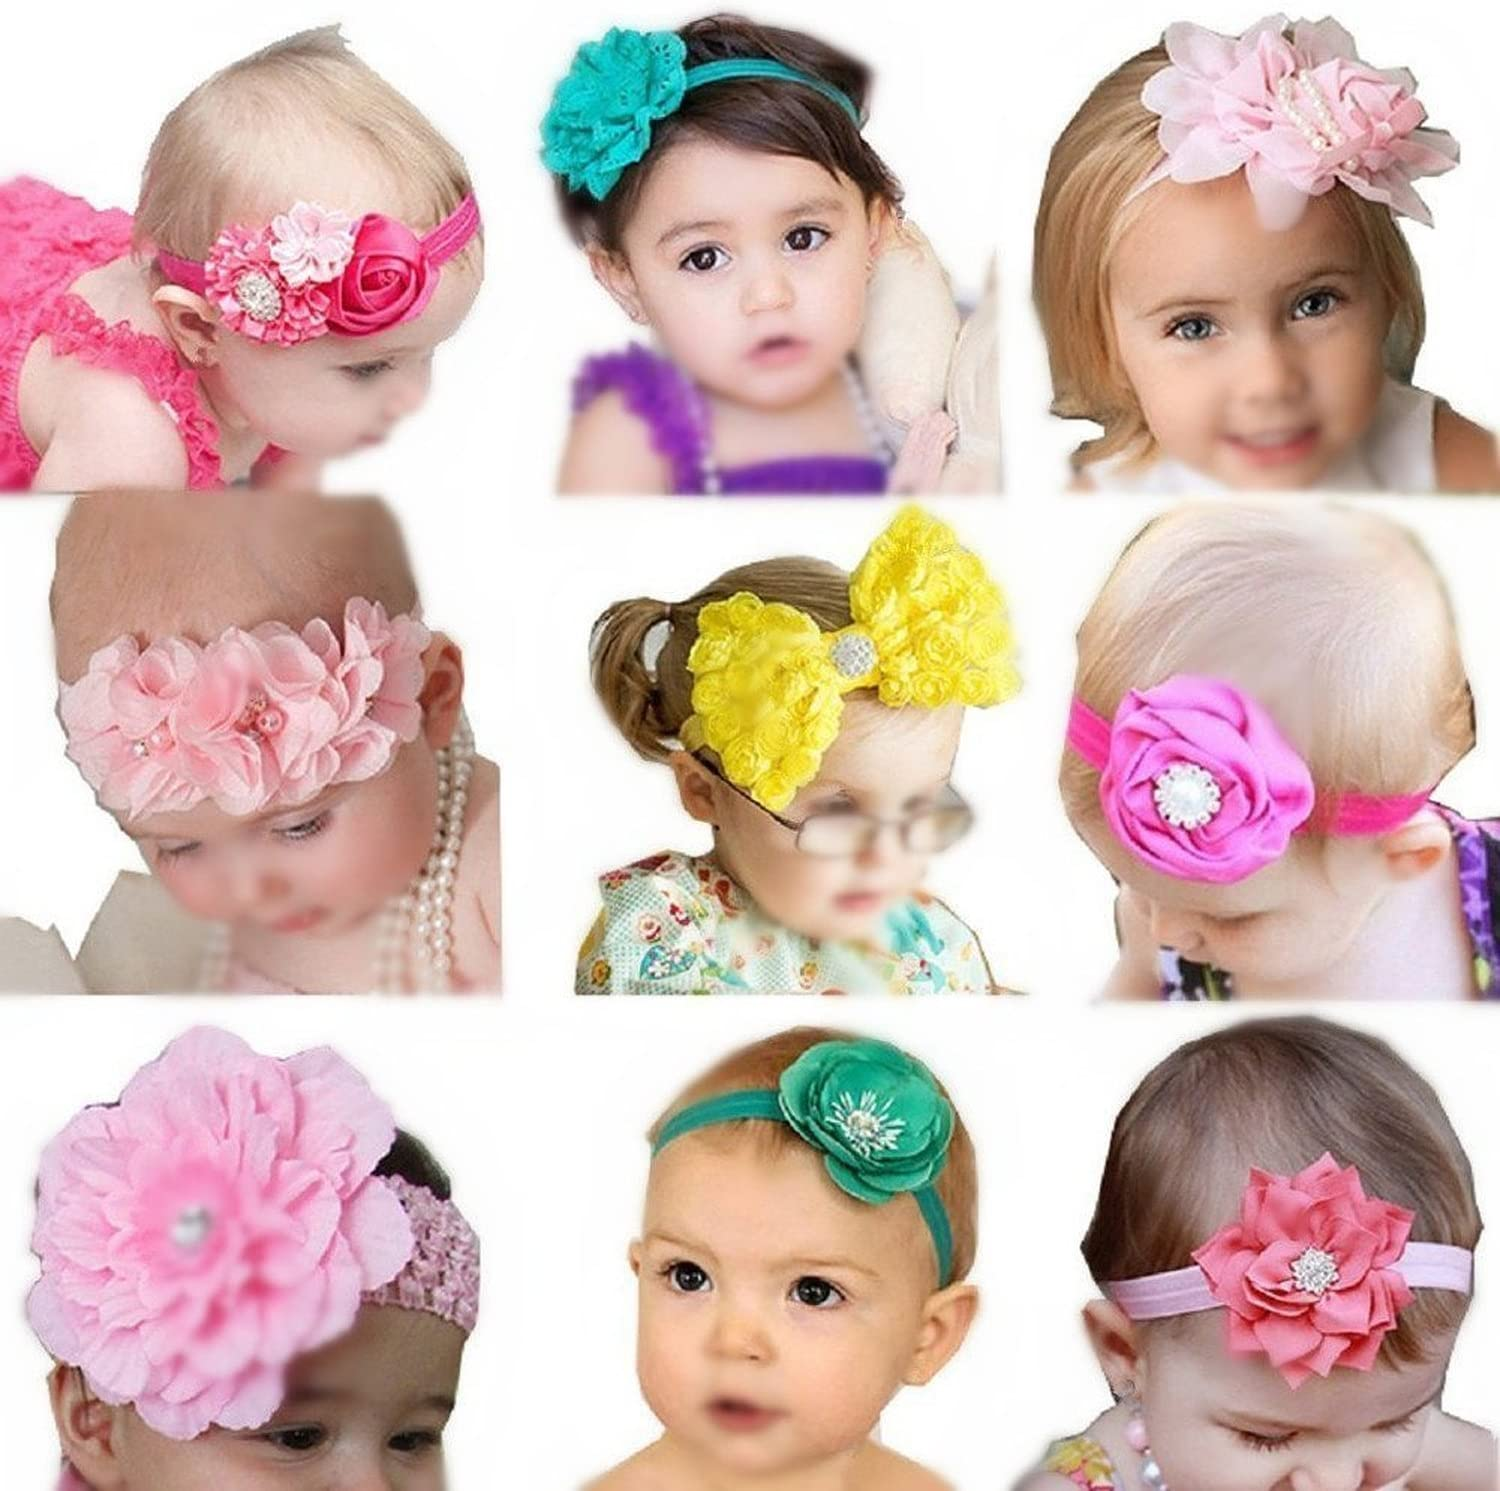 Ice Blue Crushed Velvet Hand Tied Headband for Newborn Baby Child Little Girl Photo Prop Adorable Beautiful Easter Spring Summer Bow